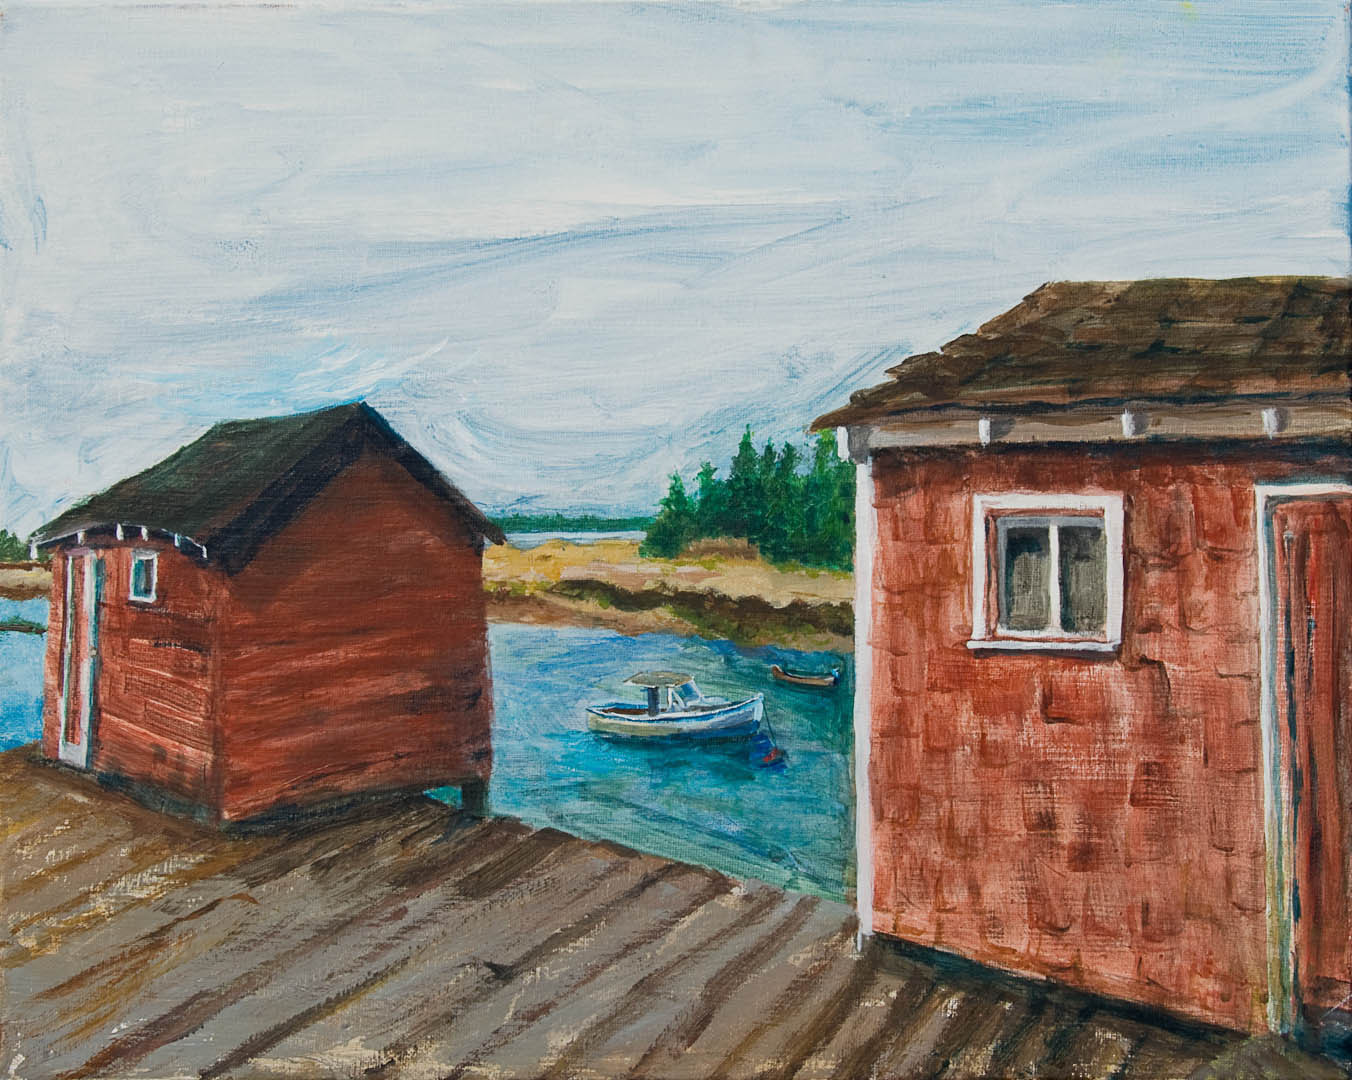 "07 Jonesport lobster shacks, Acrylic on canvas 16 x 20"" , $1600"